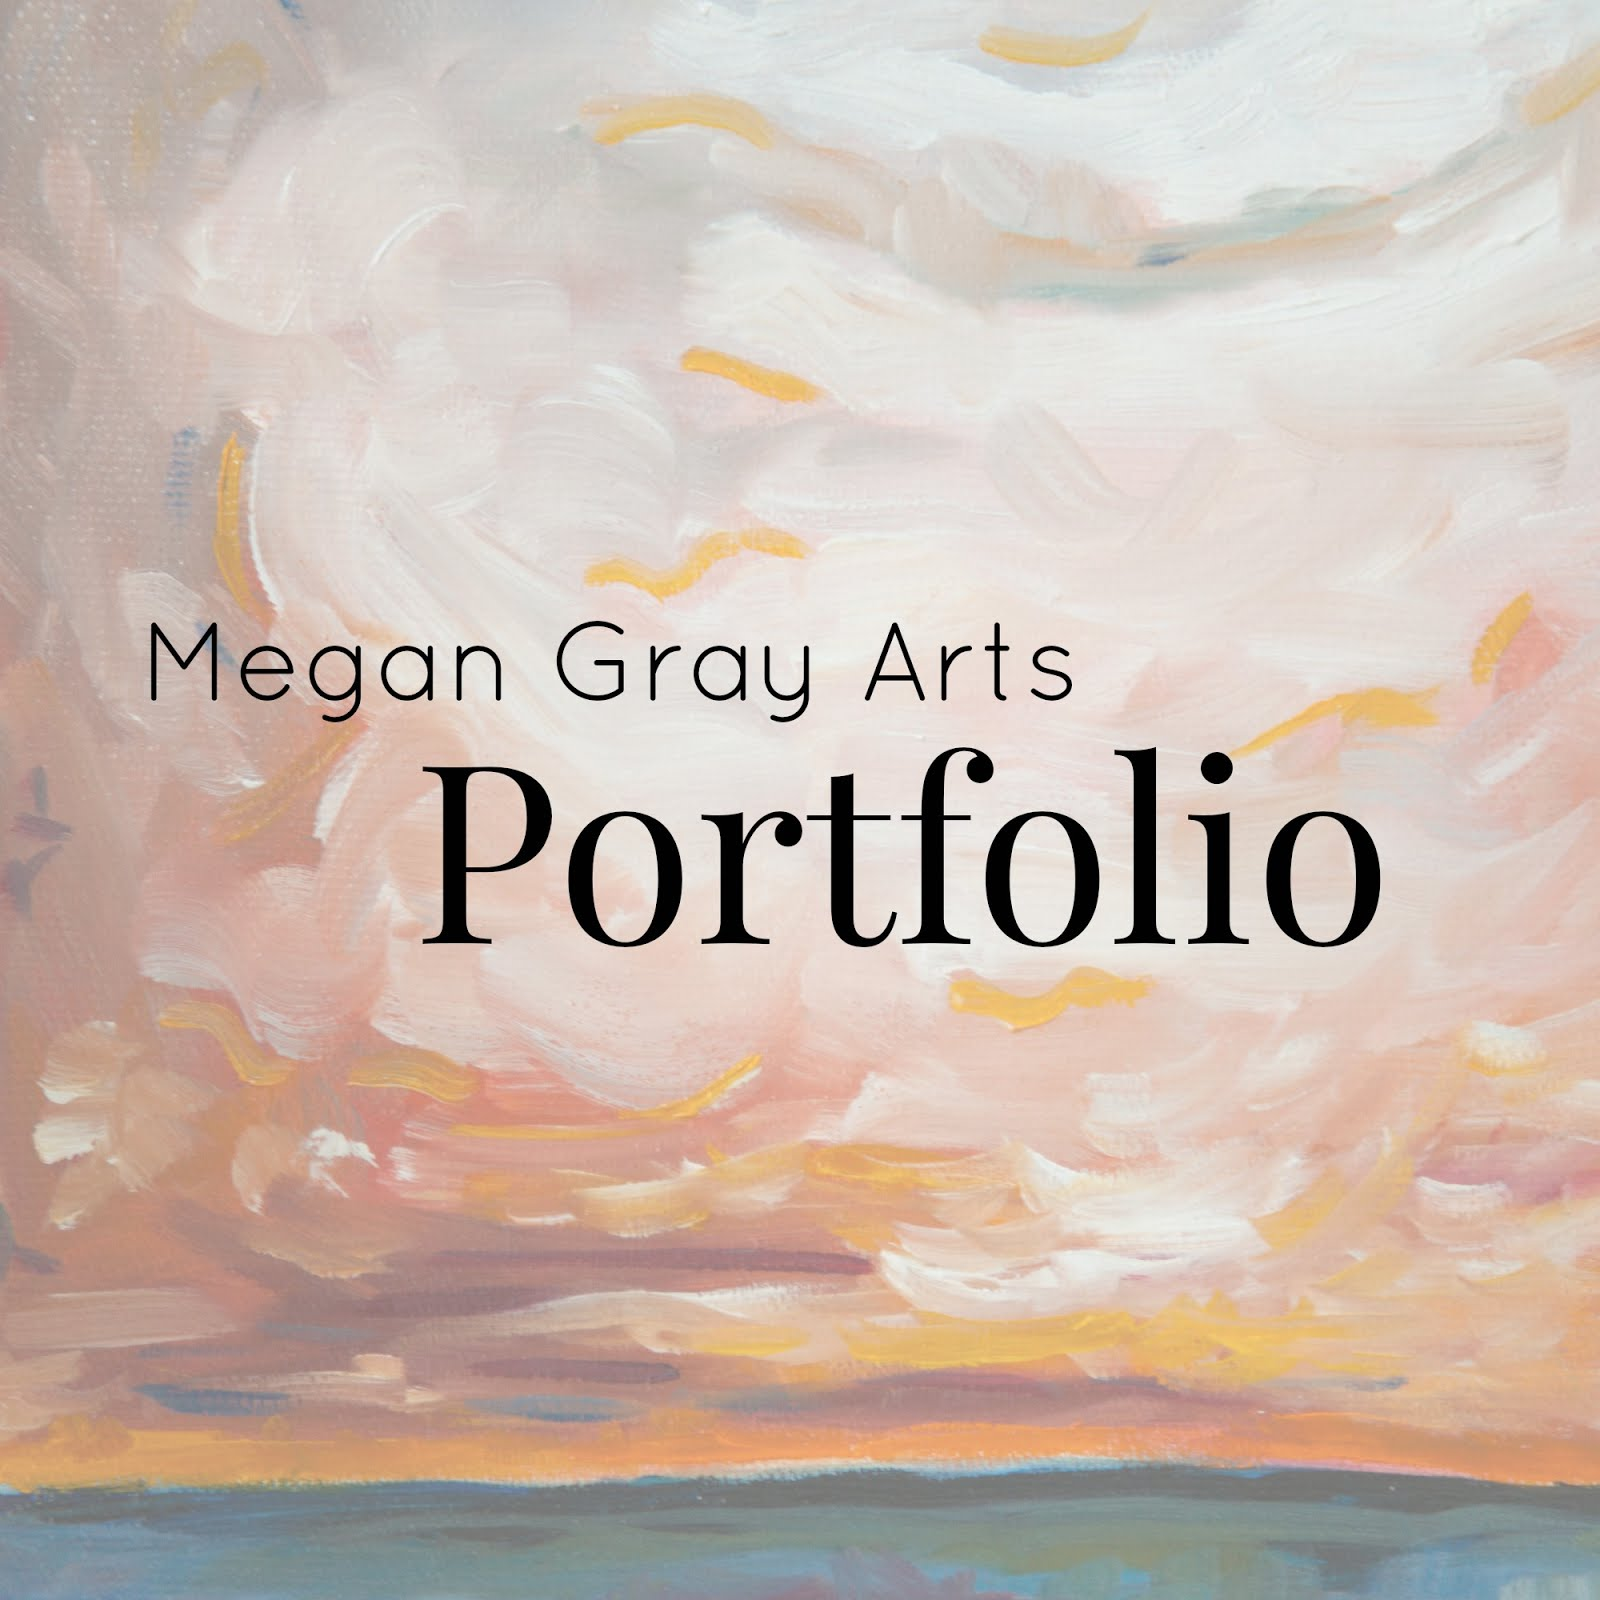 Megan Gray Arts